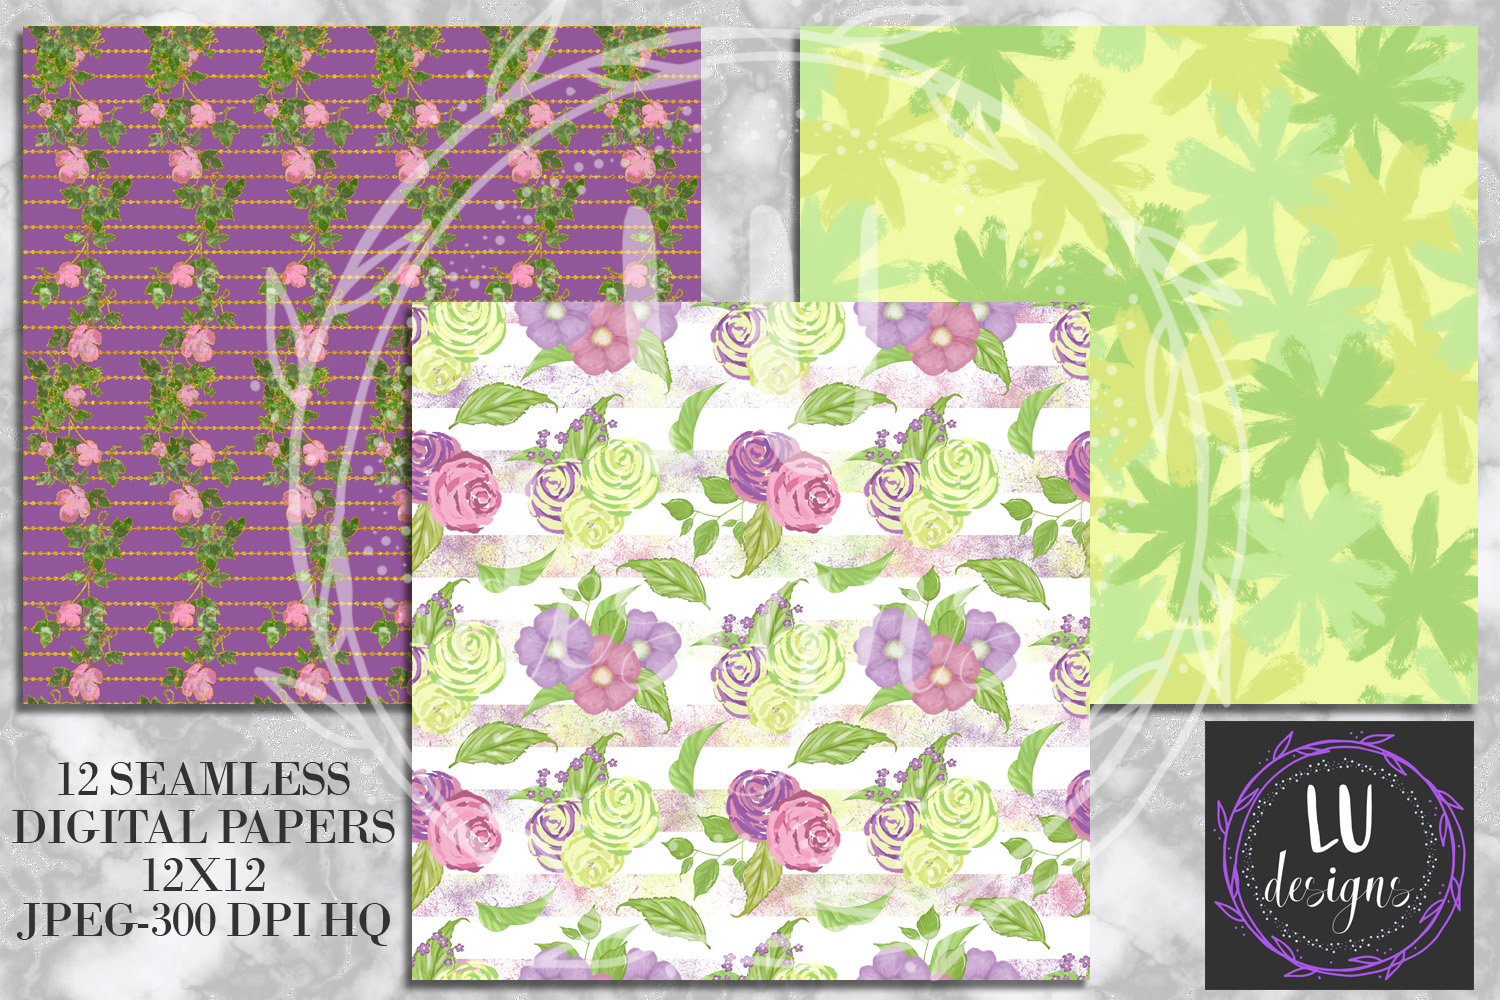 Spring Digital Papers, Spring Backgrounds, Garden Scrapbook example image 2